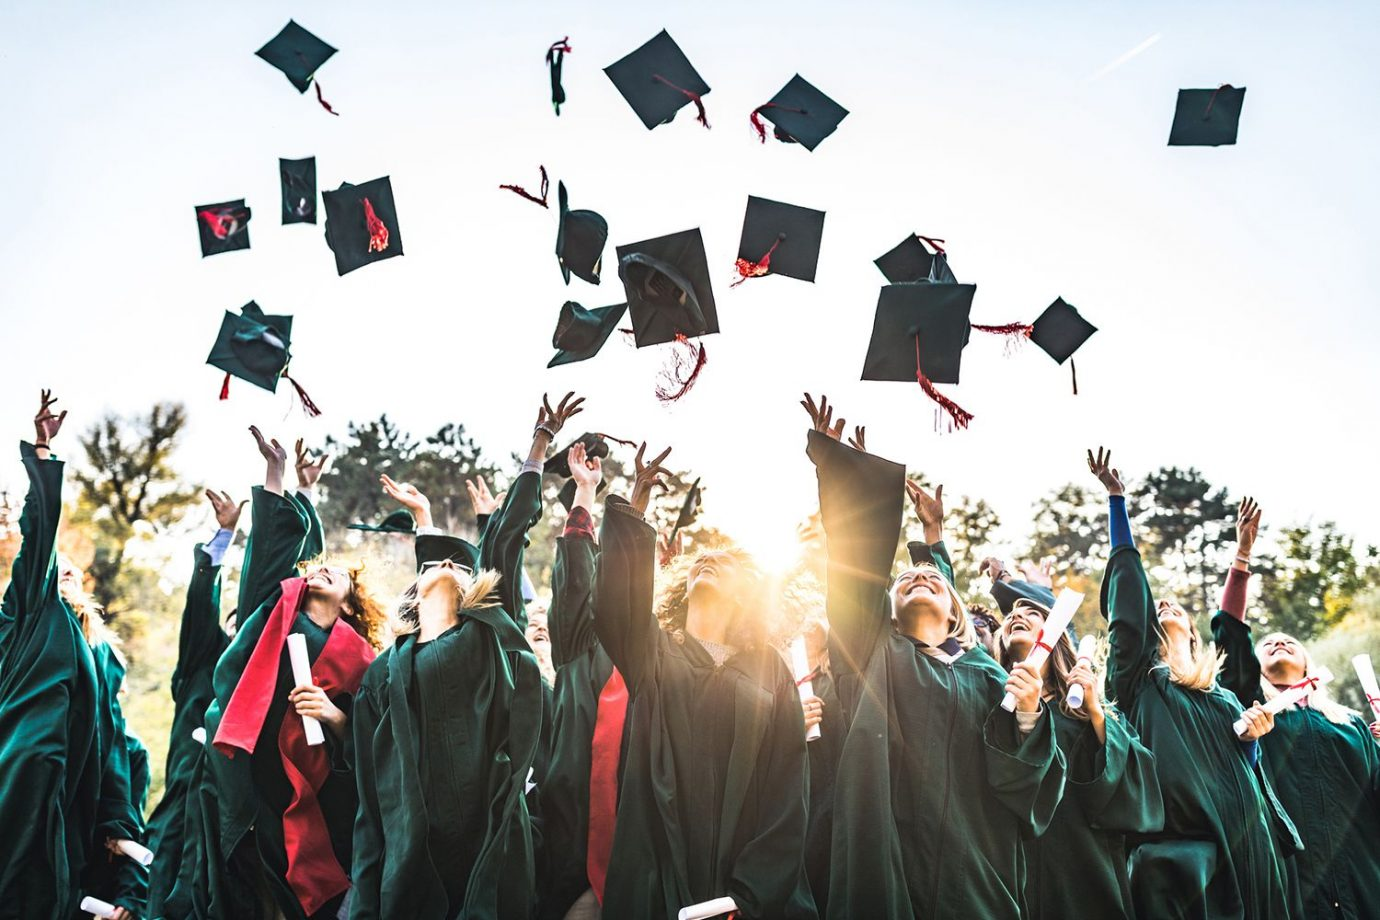 https://www.hedgethink.com/wp-content/uploads/2020/03/Ways-to-Make-Your-College-Education-More-Affordable.jpg